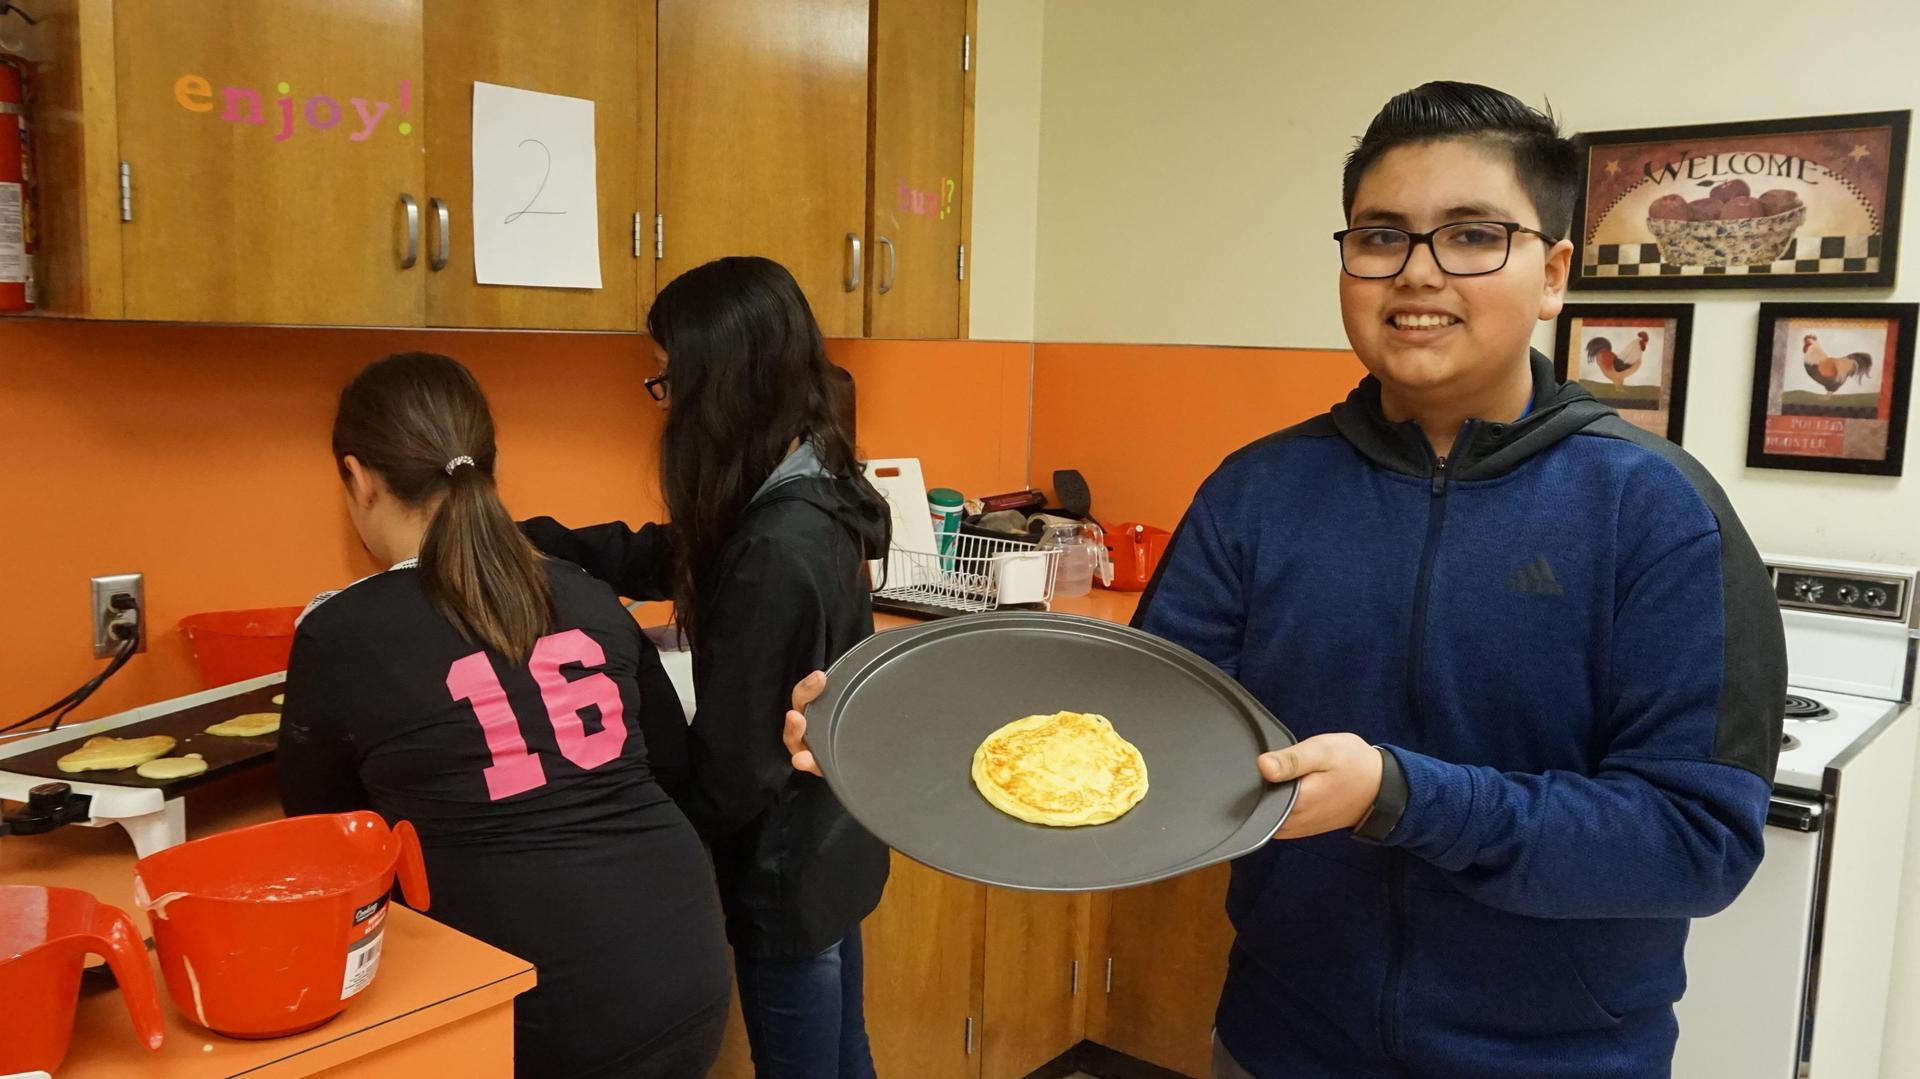 Male student showing his cooked pancake